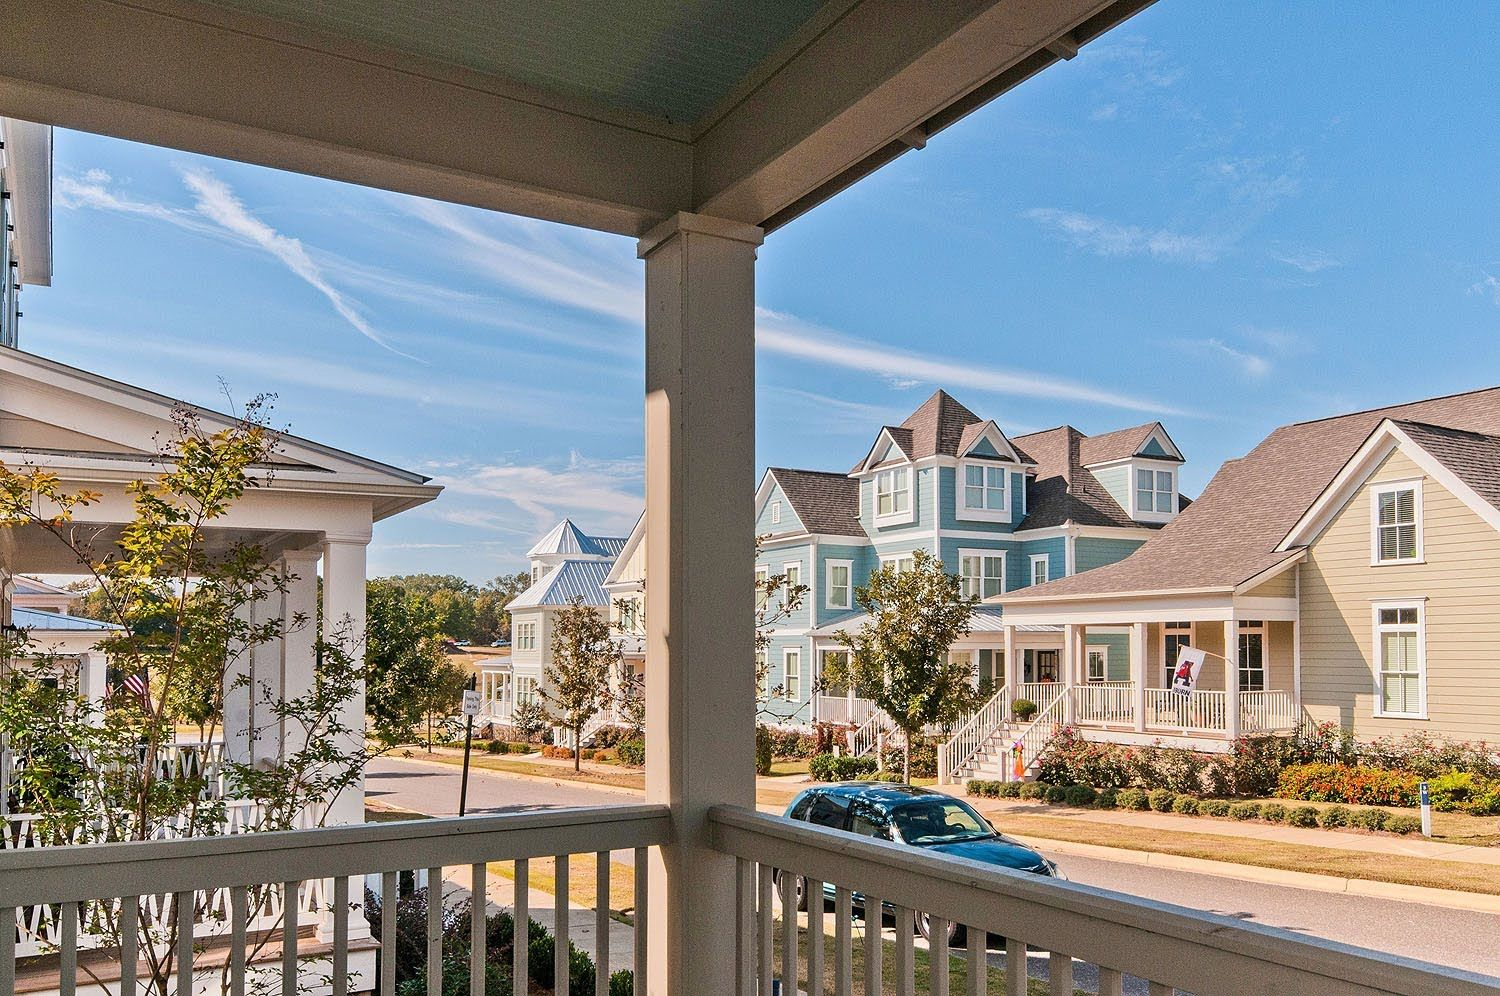 4BR/3BA home w/2 lg porches perfect for a porch swing or rocking ...